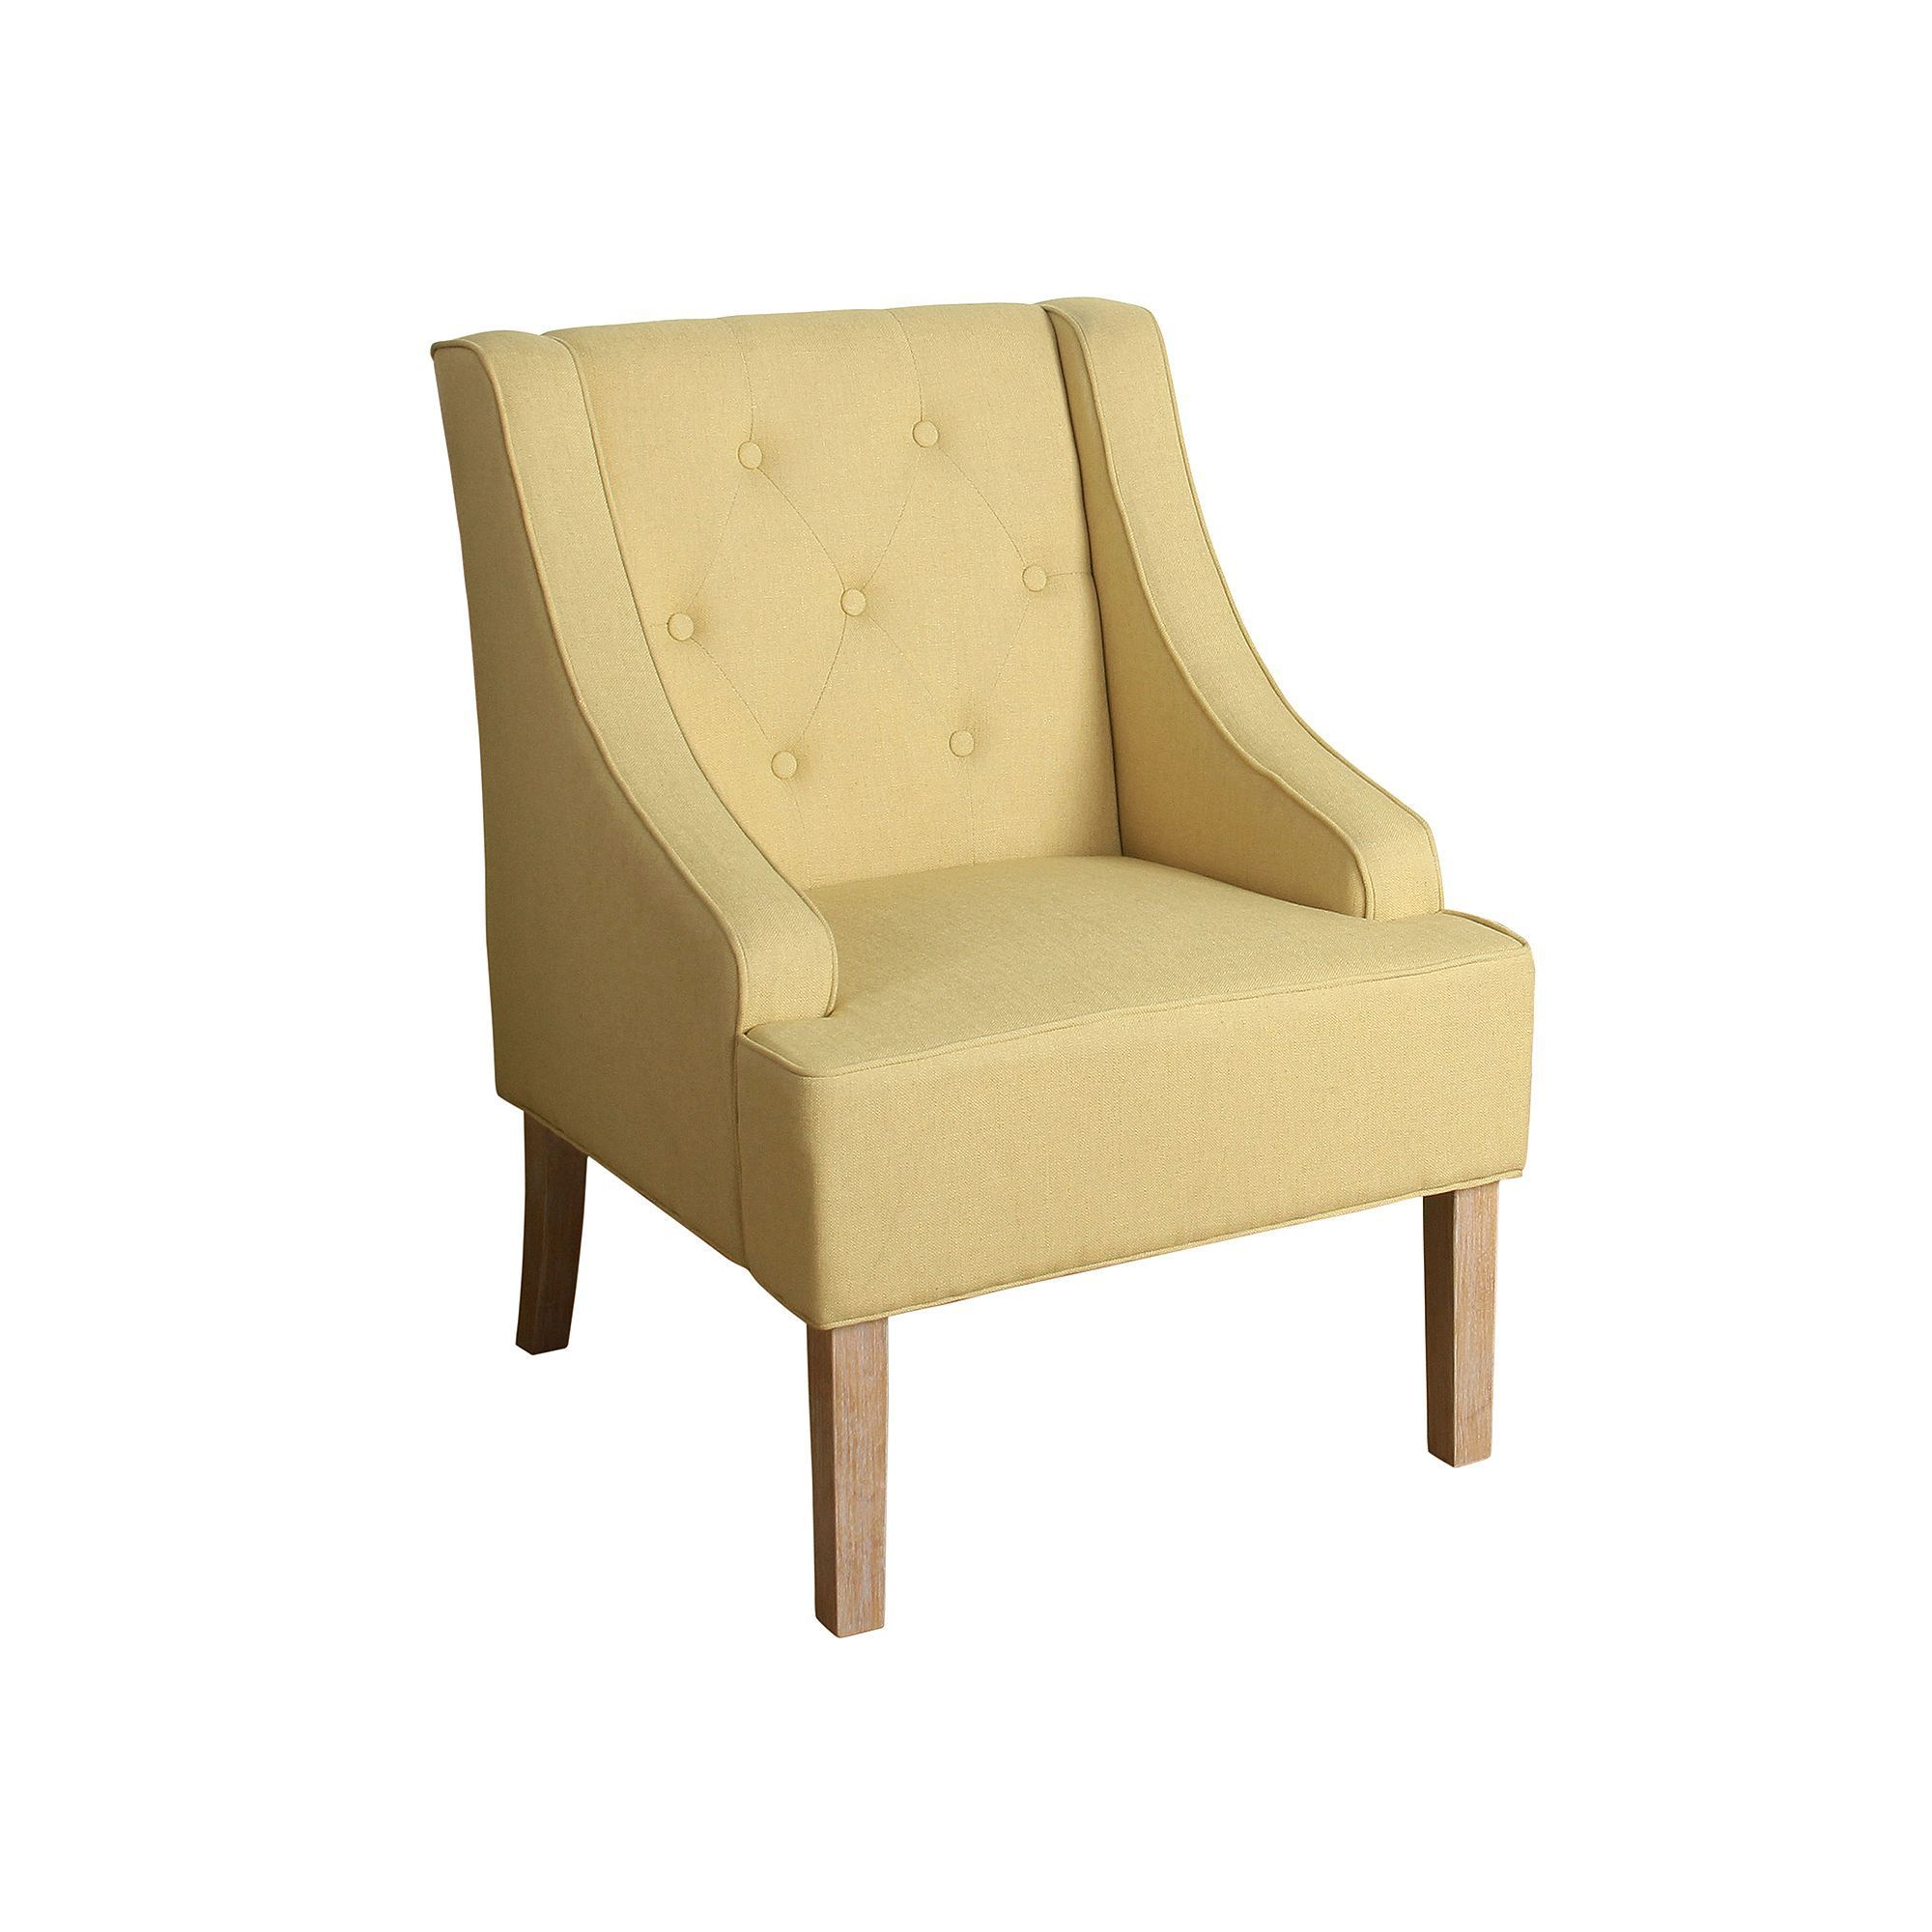 yellow upholstered accent chair light wood dining chairs homepop kate tufted swoop arm products